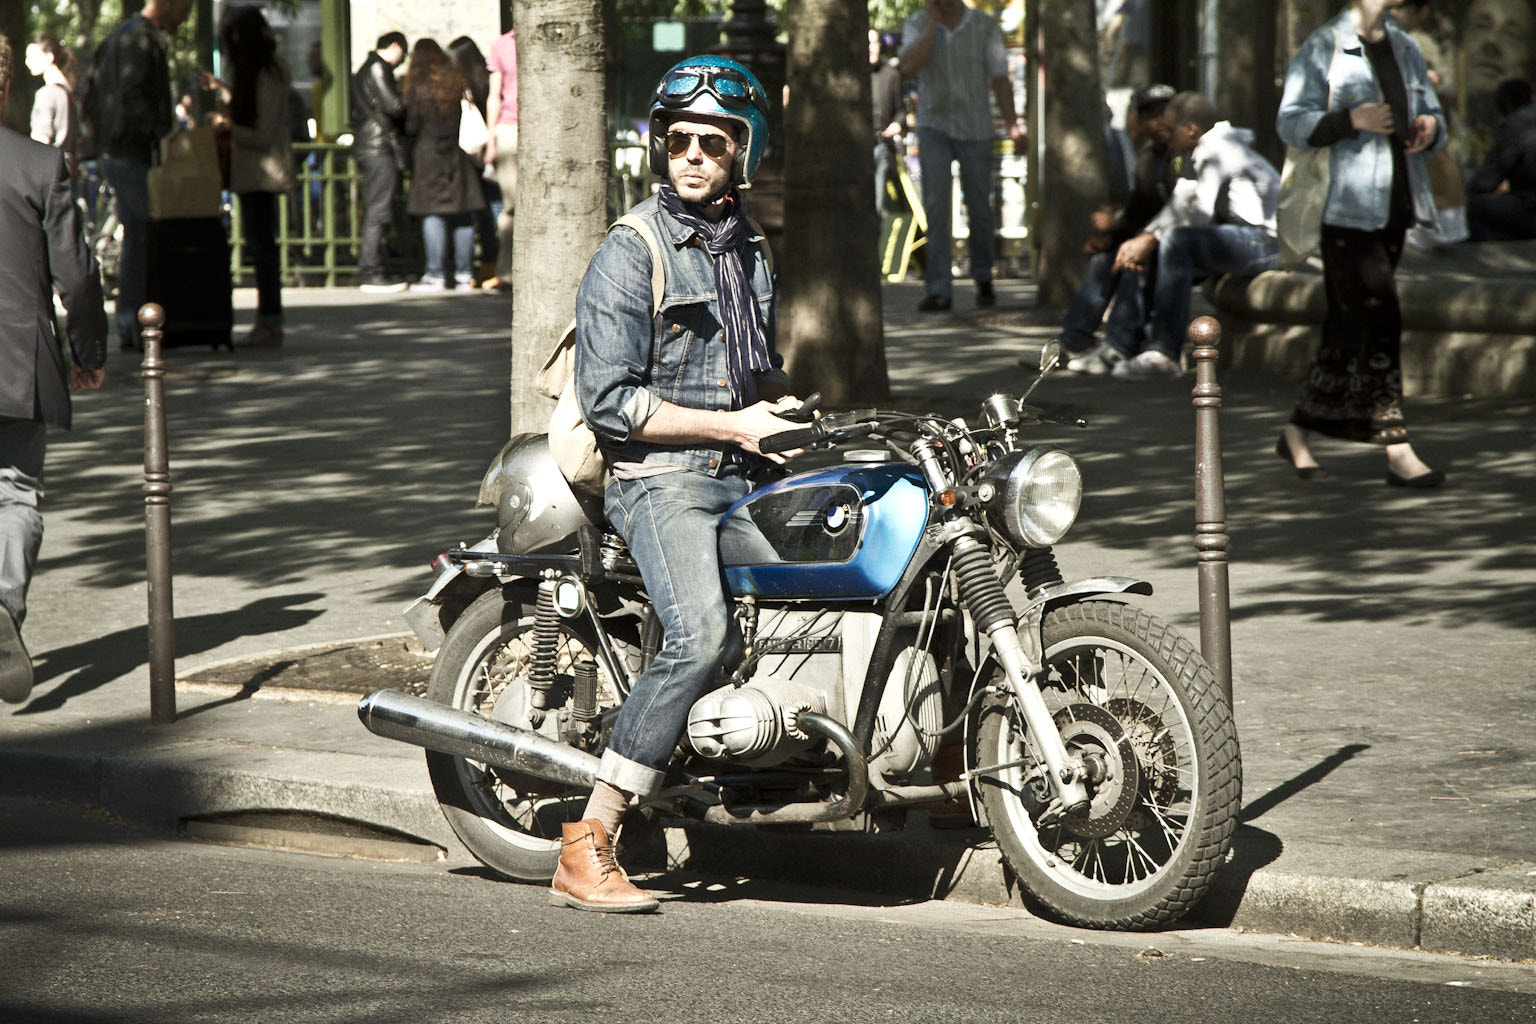 Photograph Fashion biker. by Laurence Penne on 500px